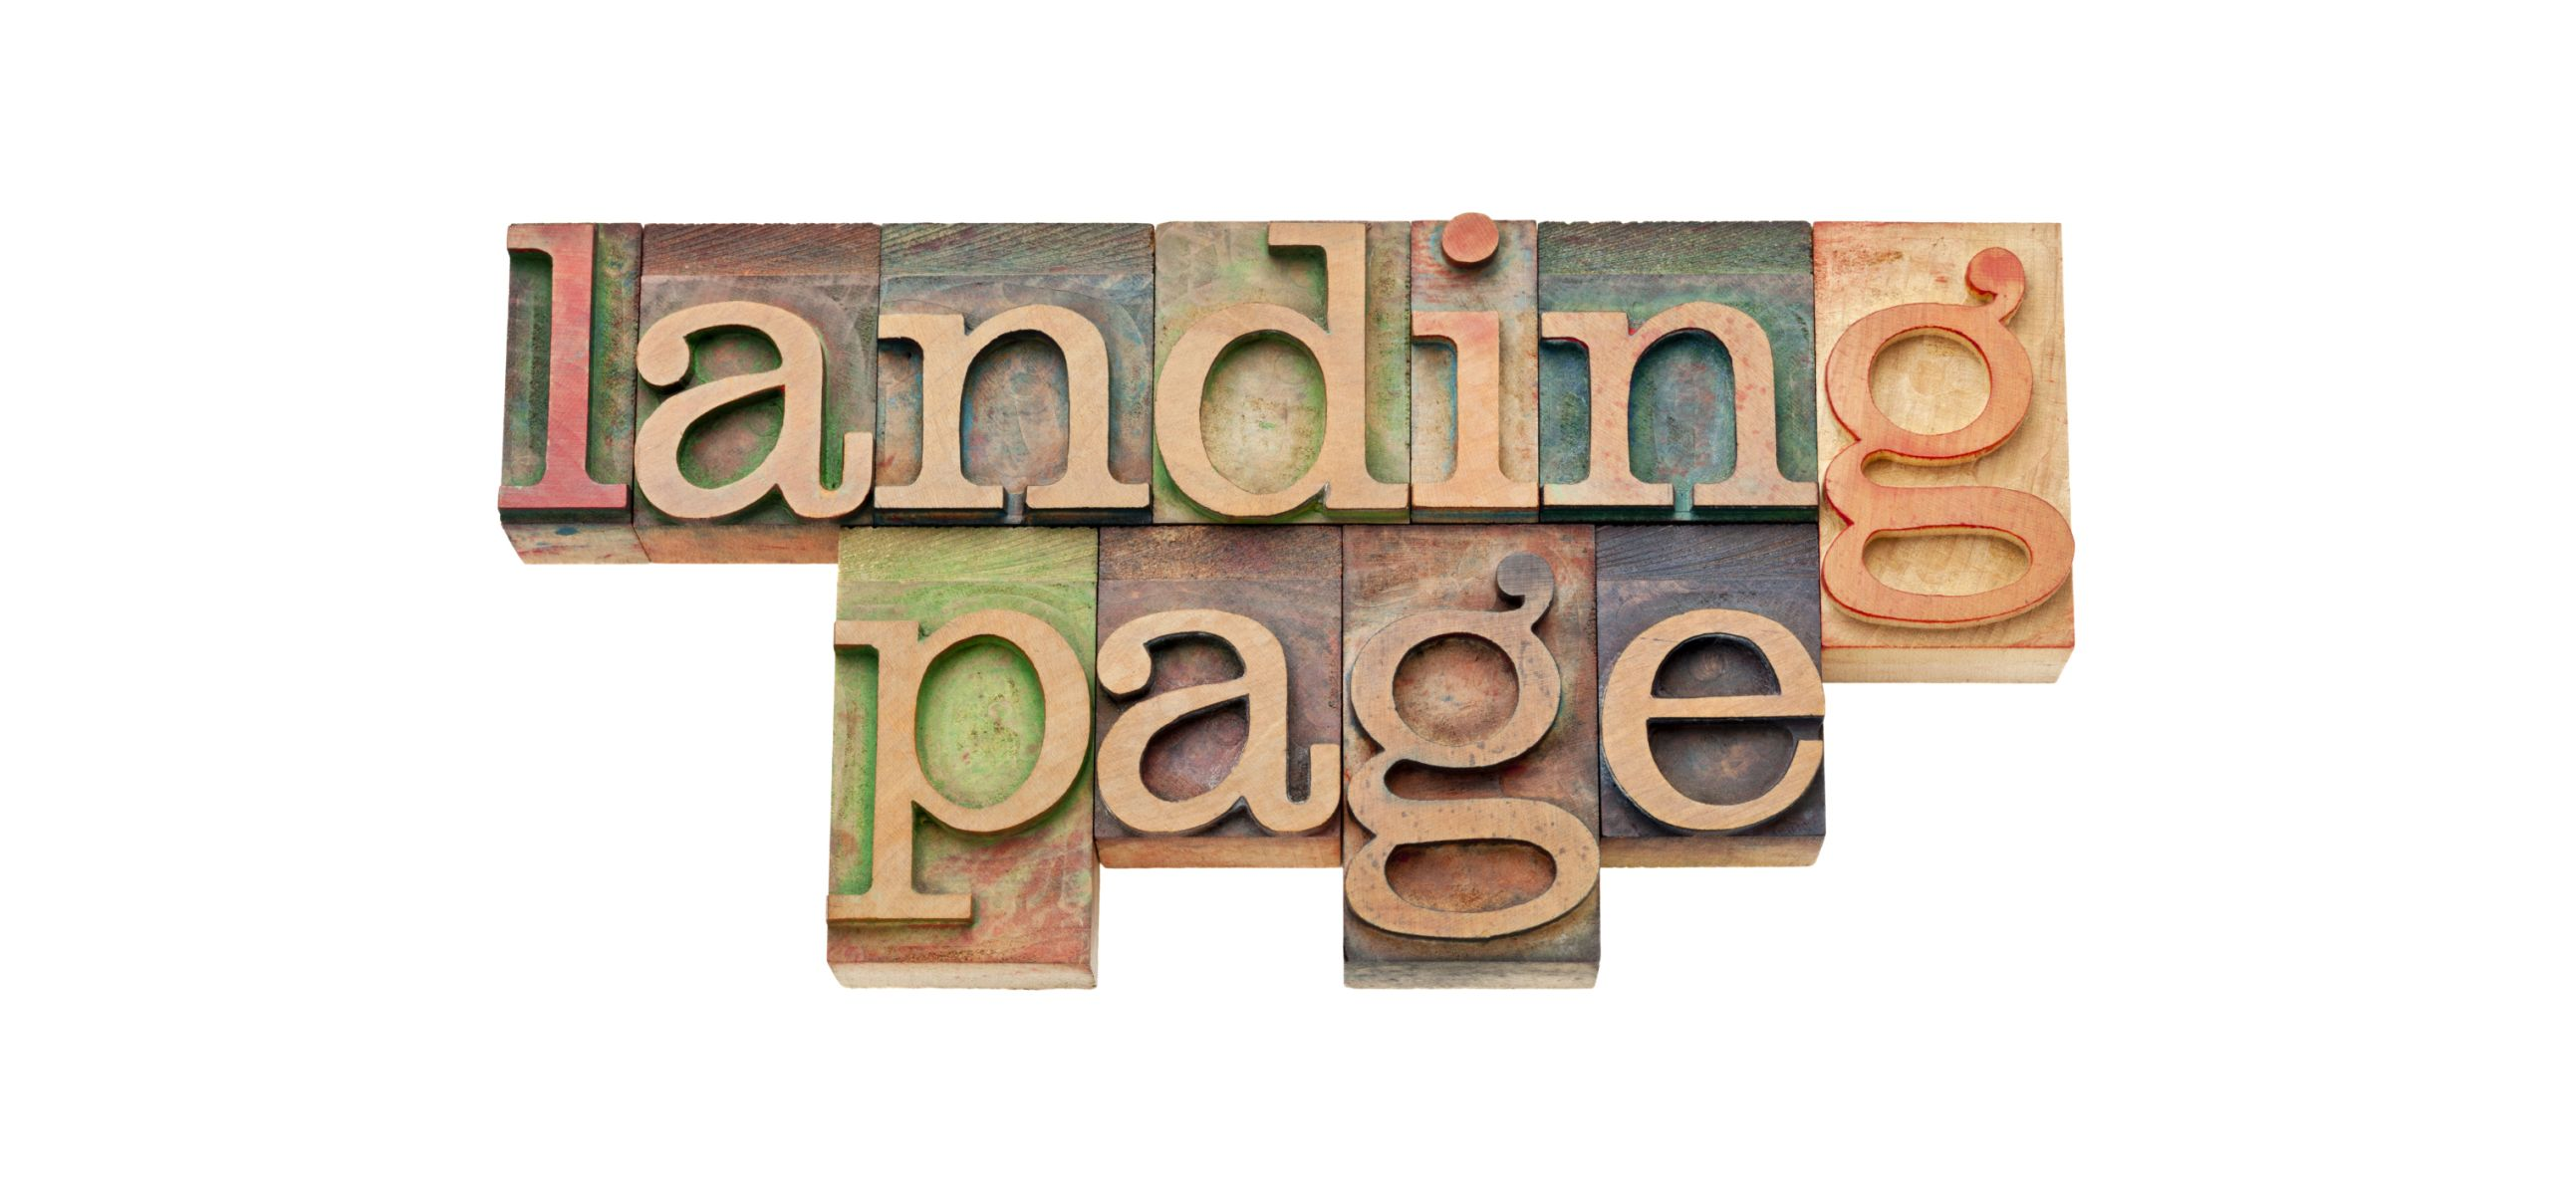 Landing pages – E-mail Marketing na Prática V